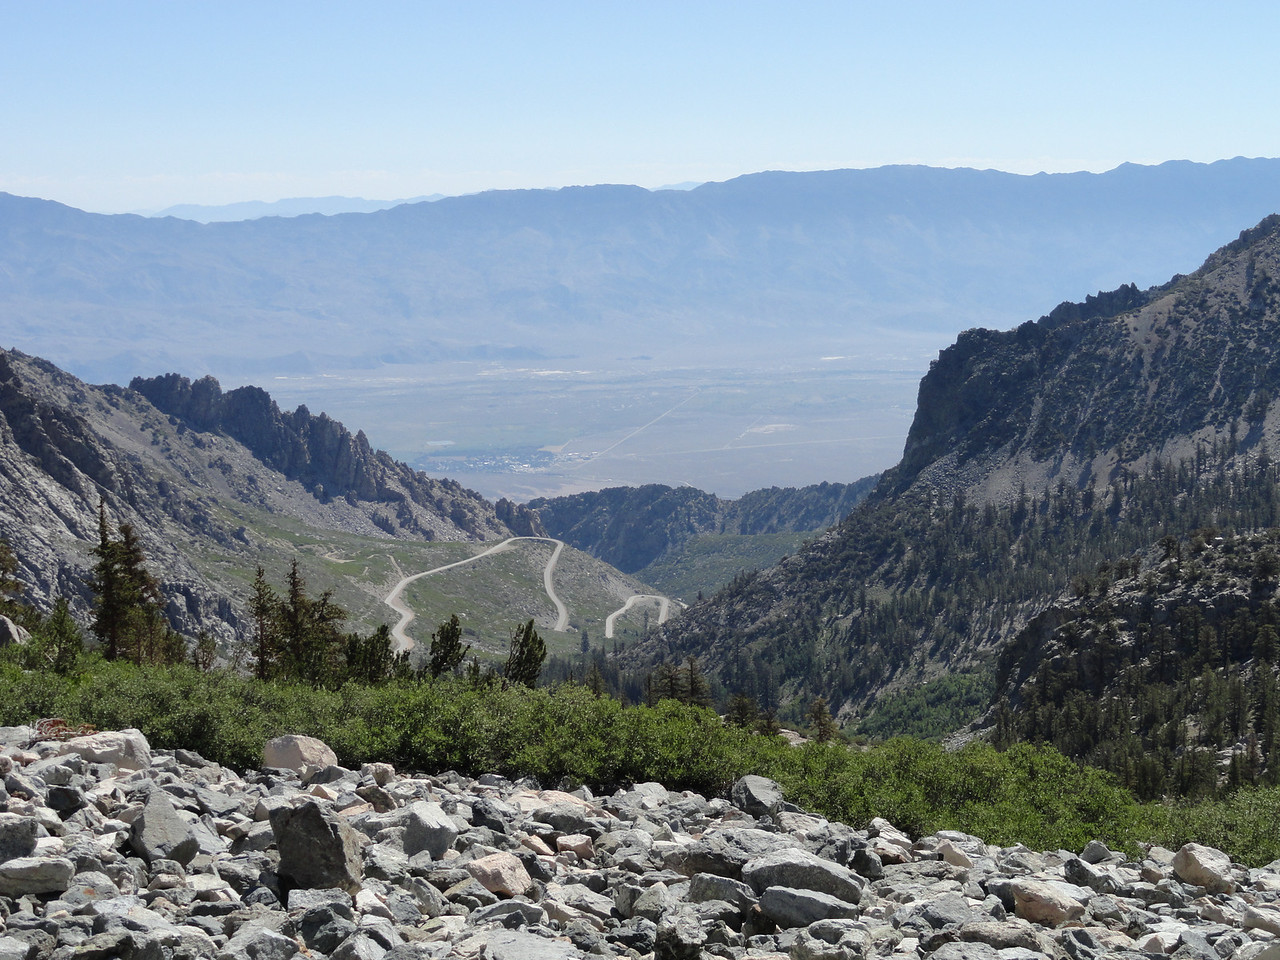 View from the trail back down to Onion Valley in the foreground, Inyo Valley in the middle, and the Inyo Mountains in the background.